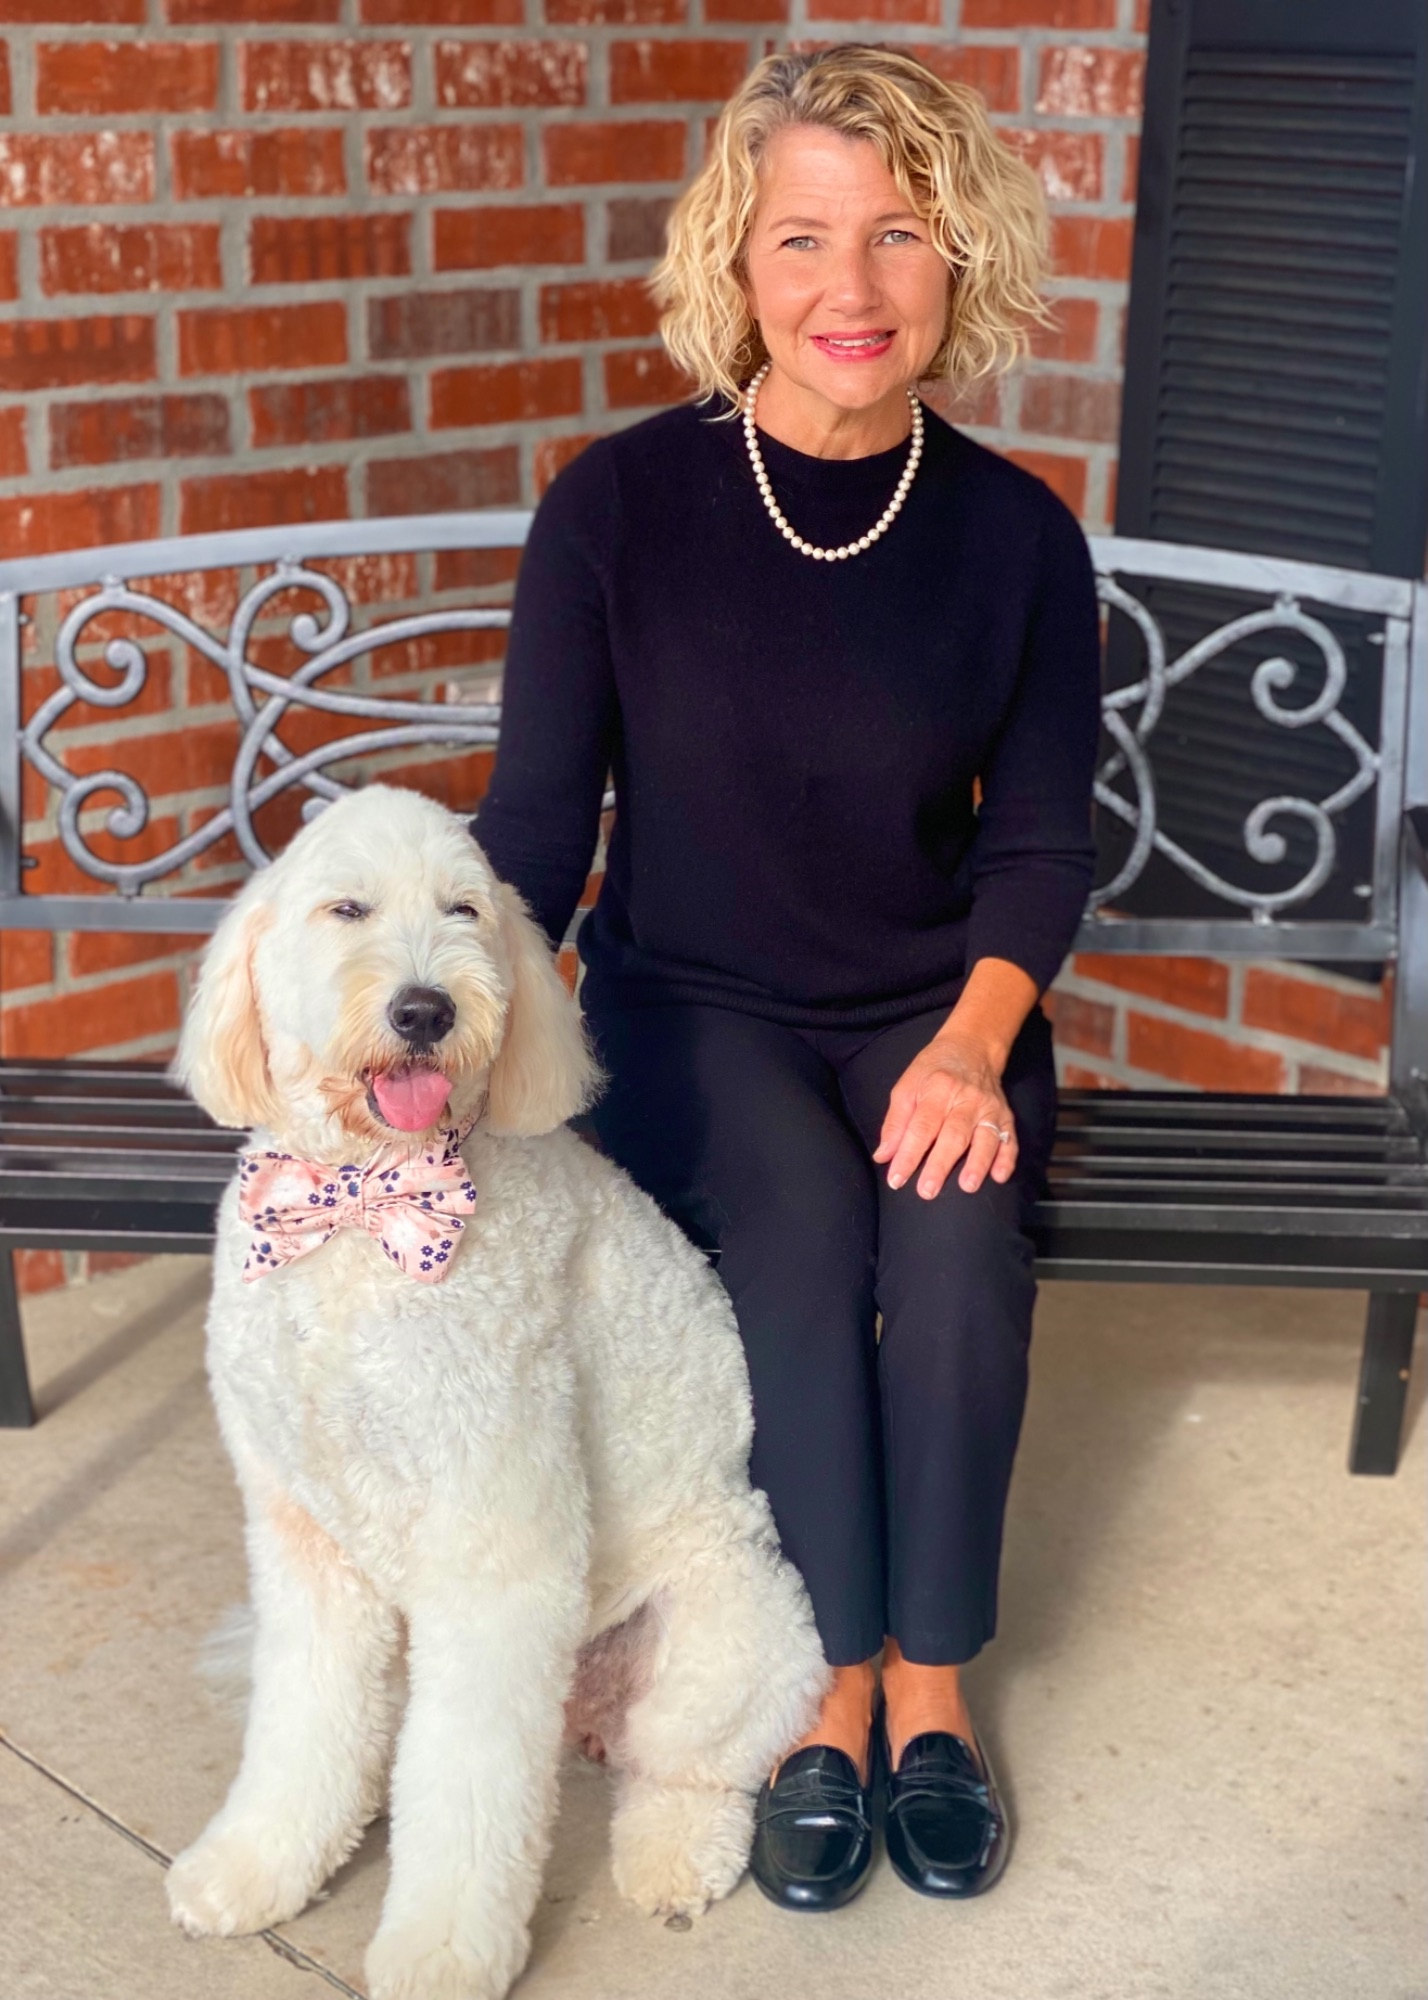 Photo of Angie King & Lucy - Funeral Director - Therapy Dog Handler